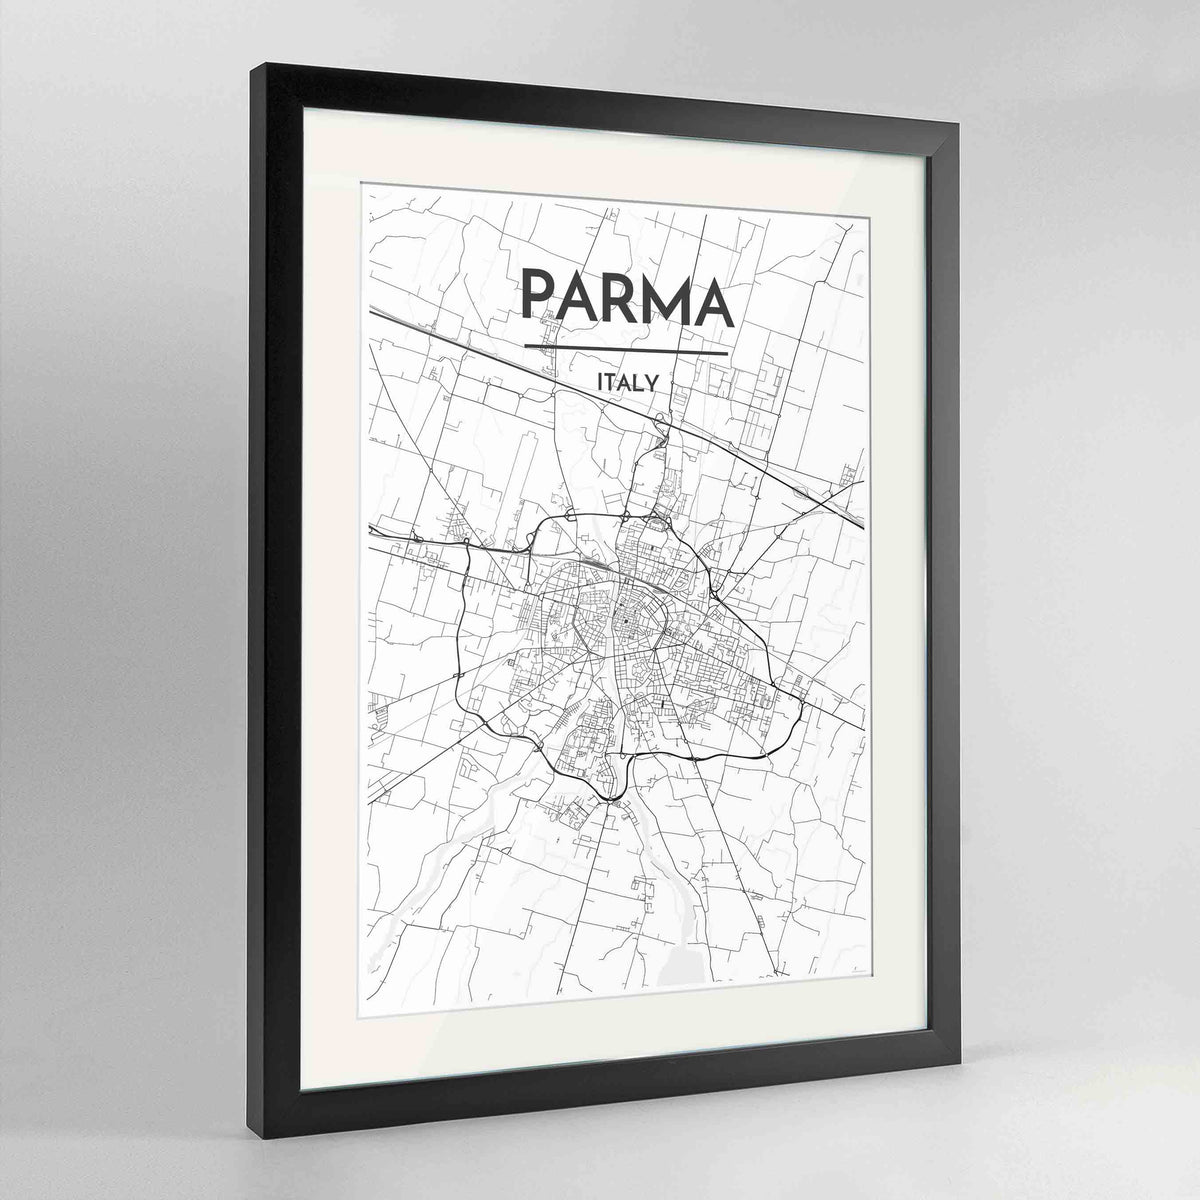 "Framed Parma Map Art Print 24x36"" Contemporary Black frame Point Two Design Group"